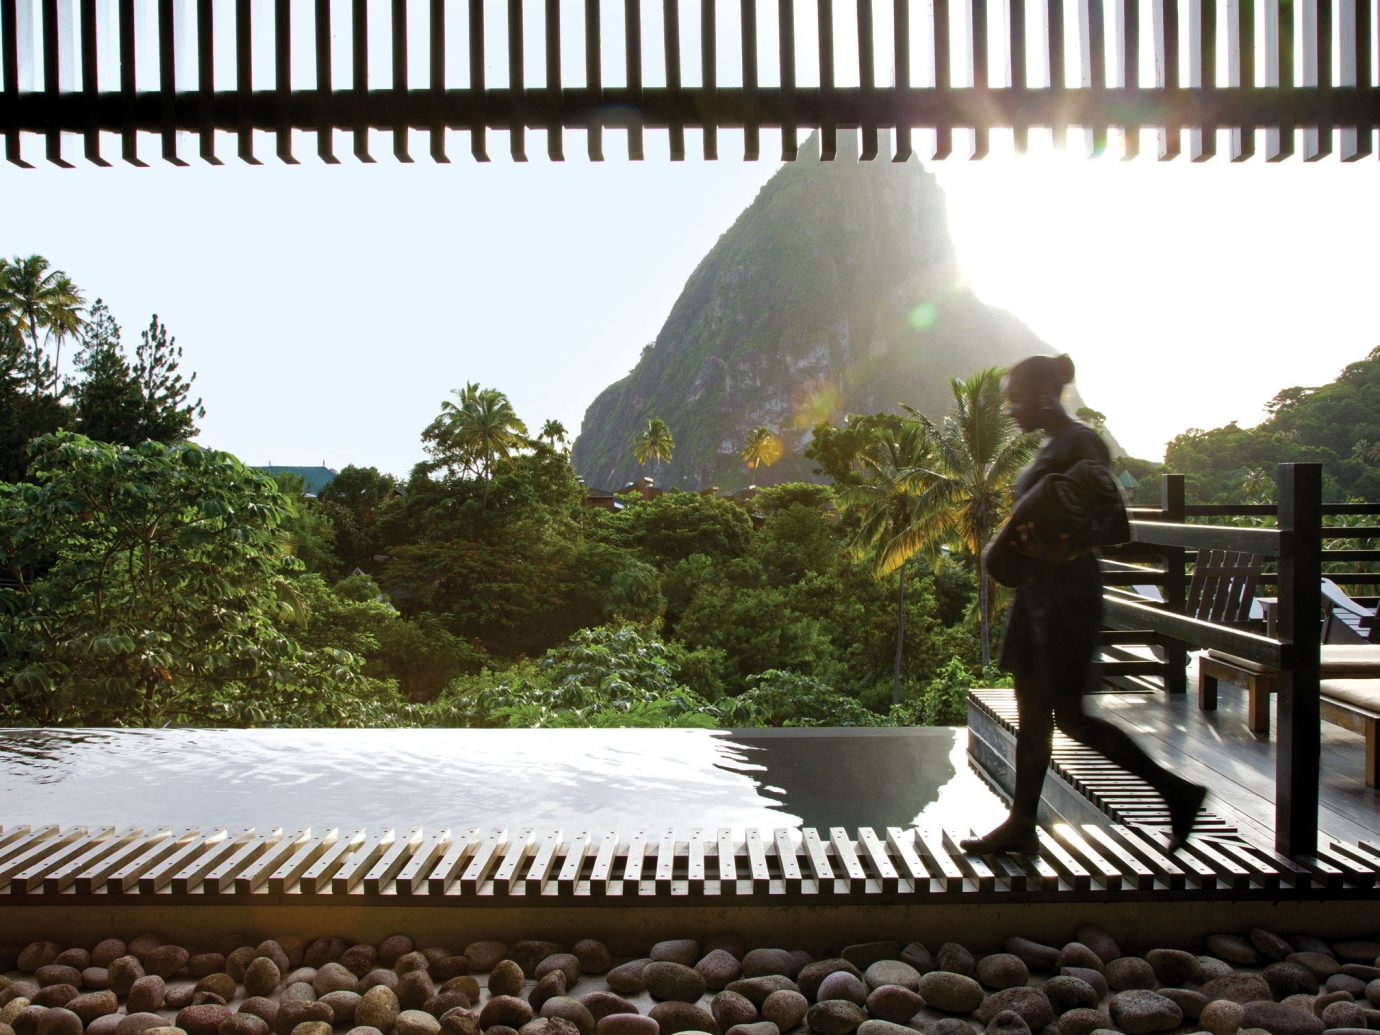 Architecture Buildings Design Hotels Mountains Romance Scenic views tree leisure image outdoor tourism